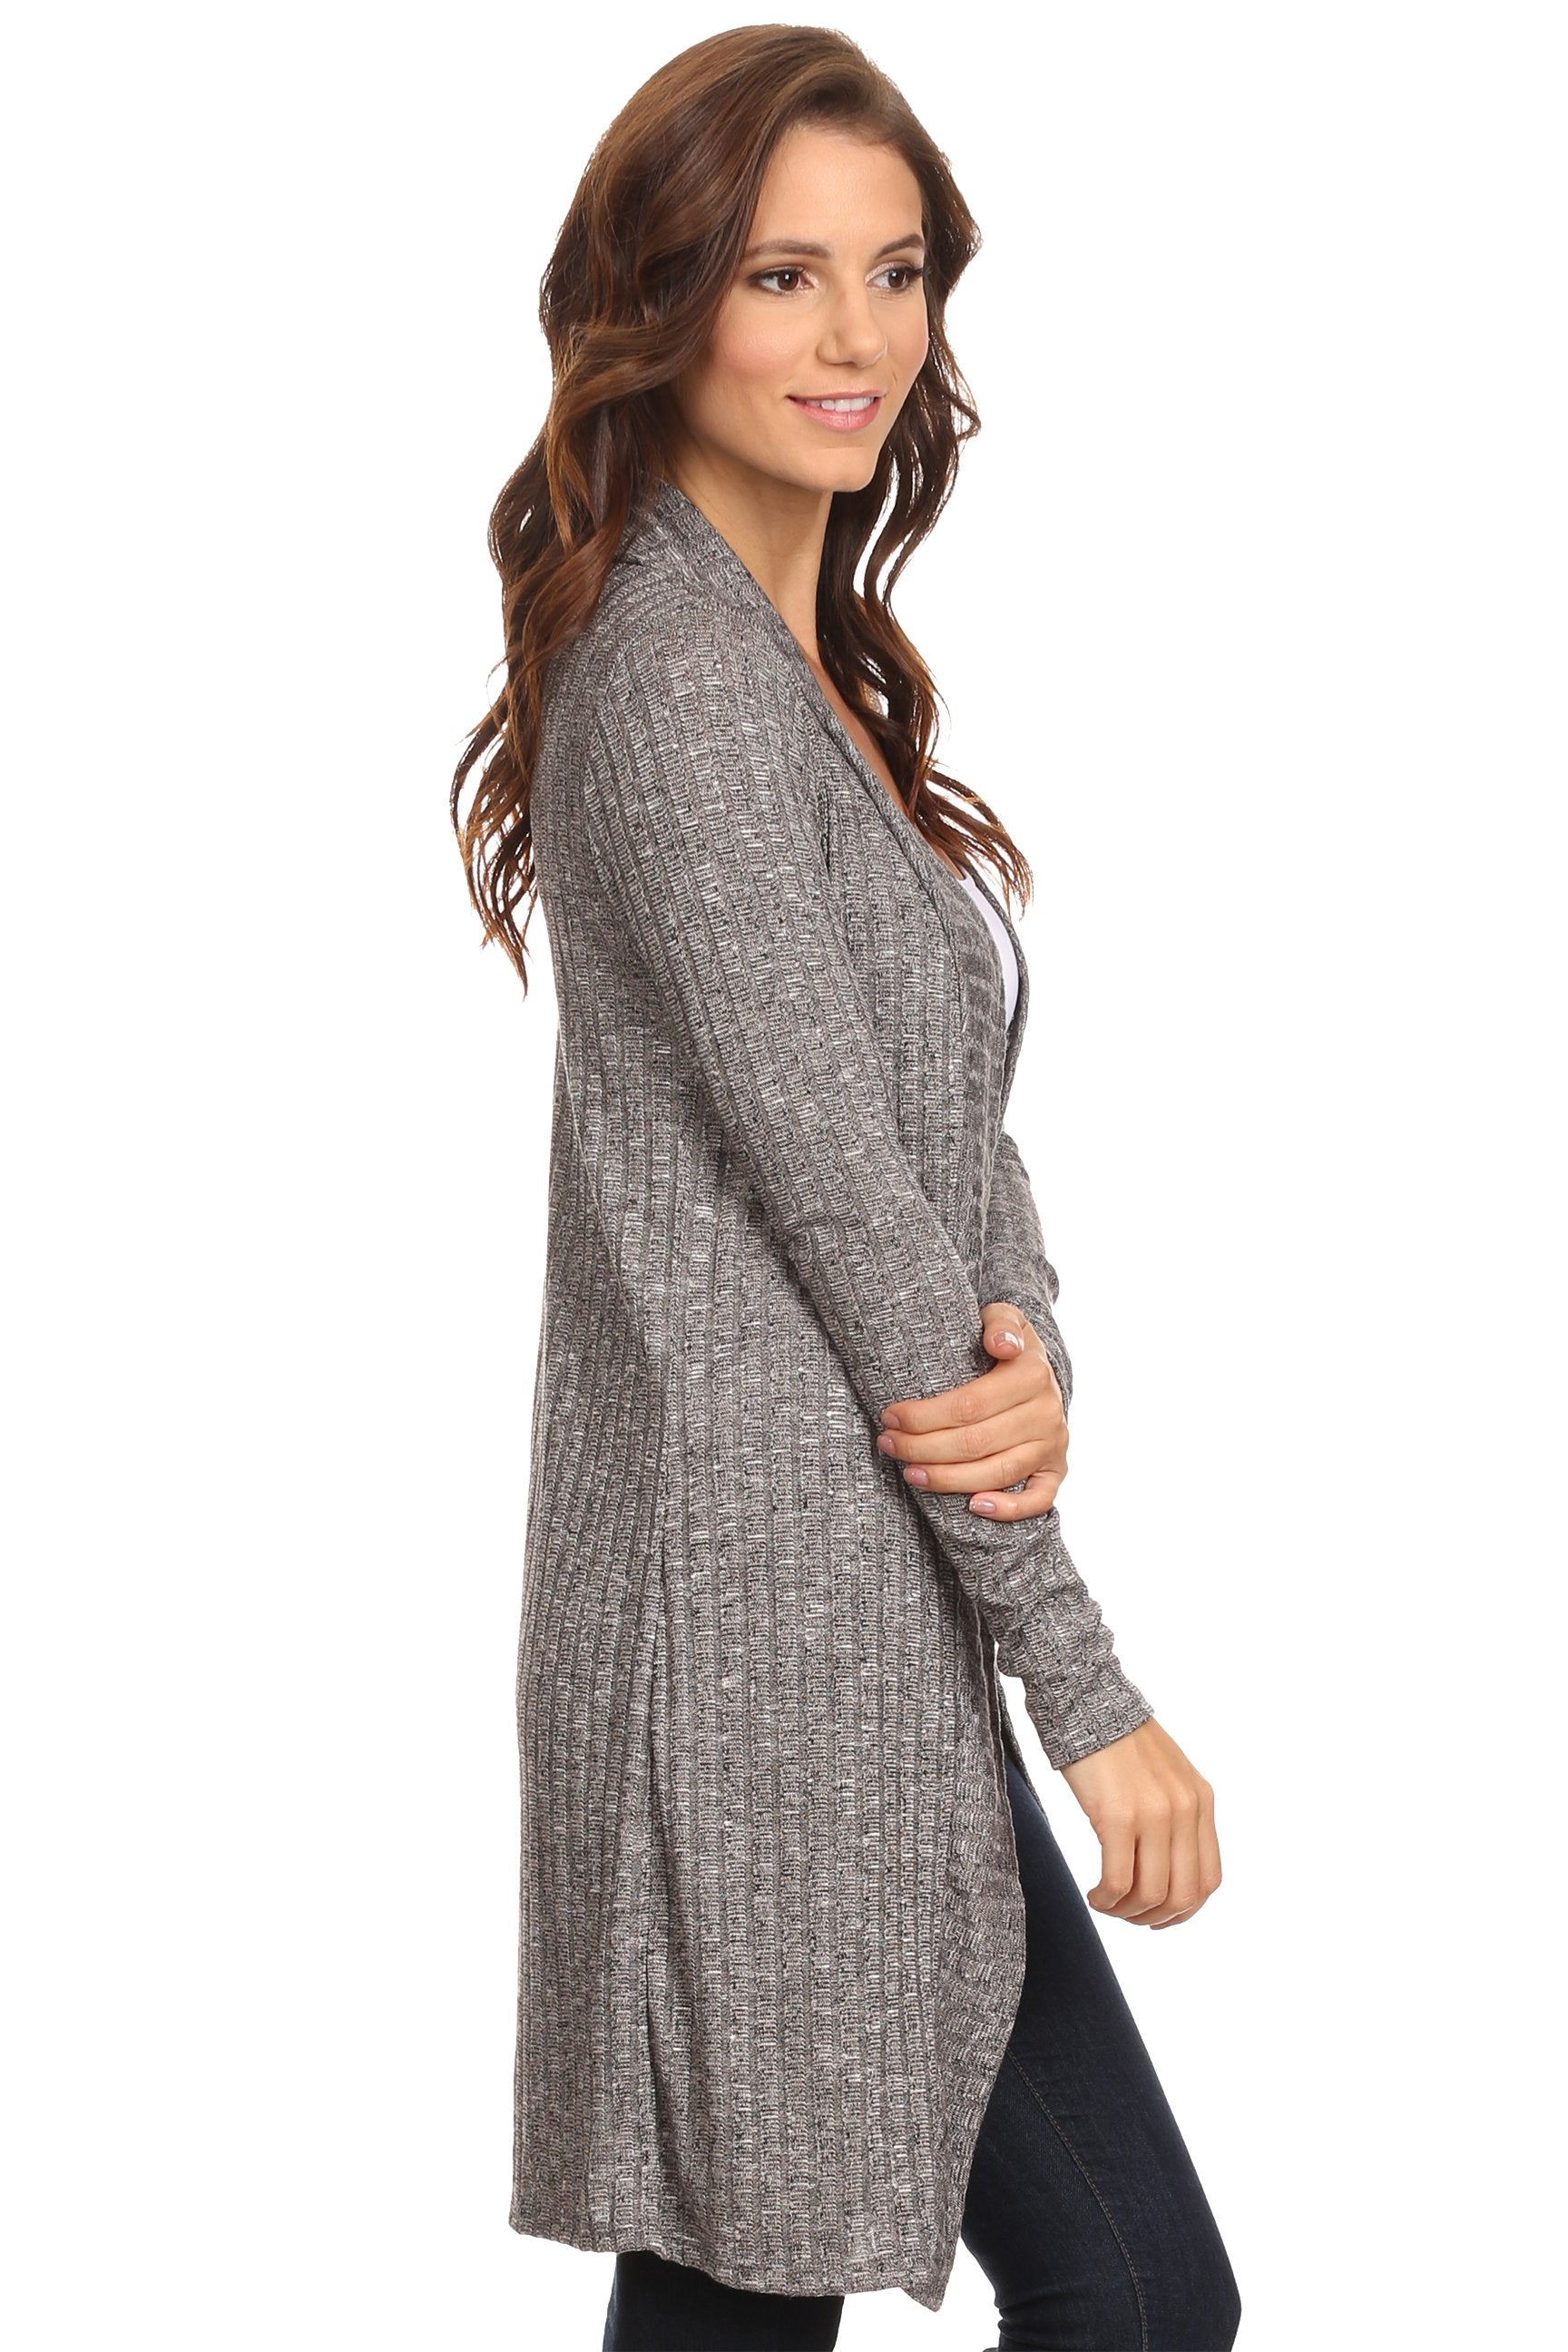 MiMi: Ribbed Long Sleeve Cardigan (XL sizes)